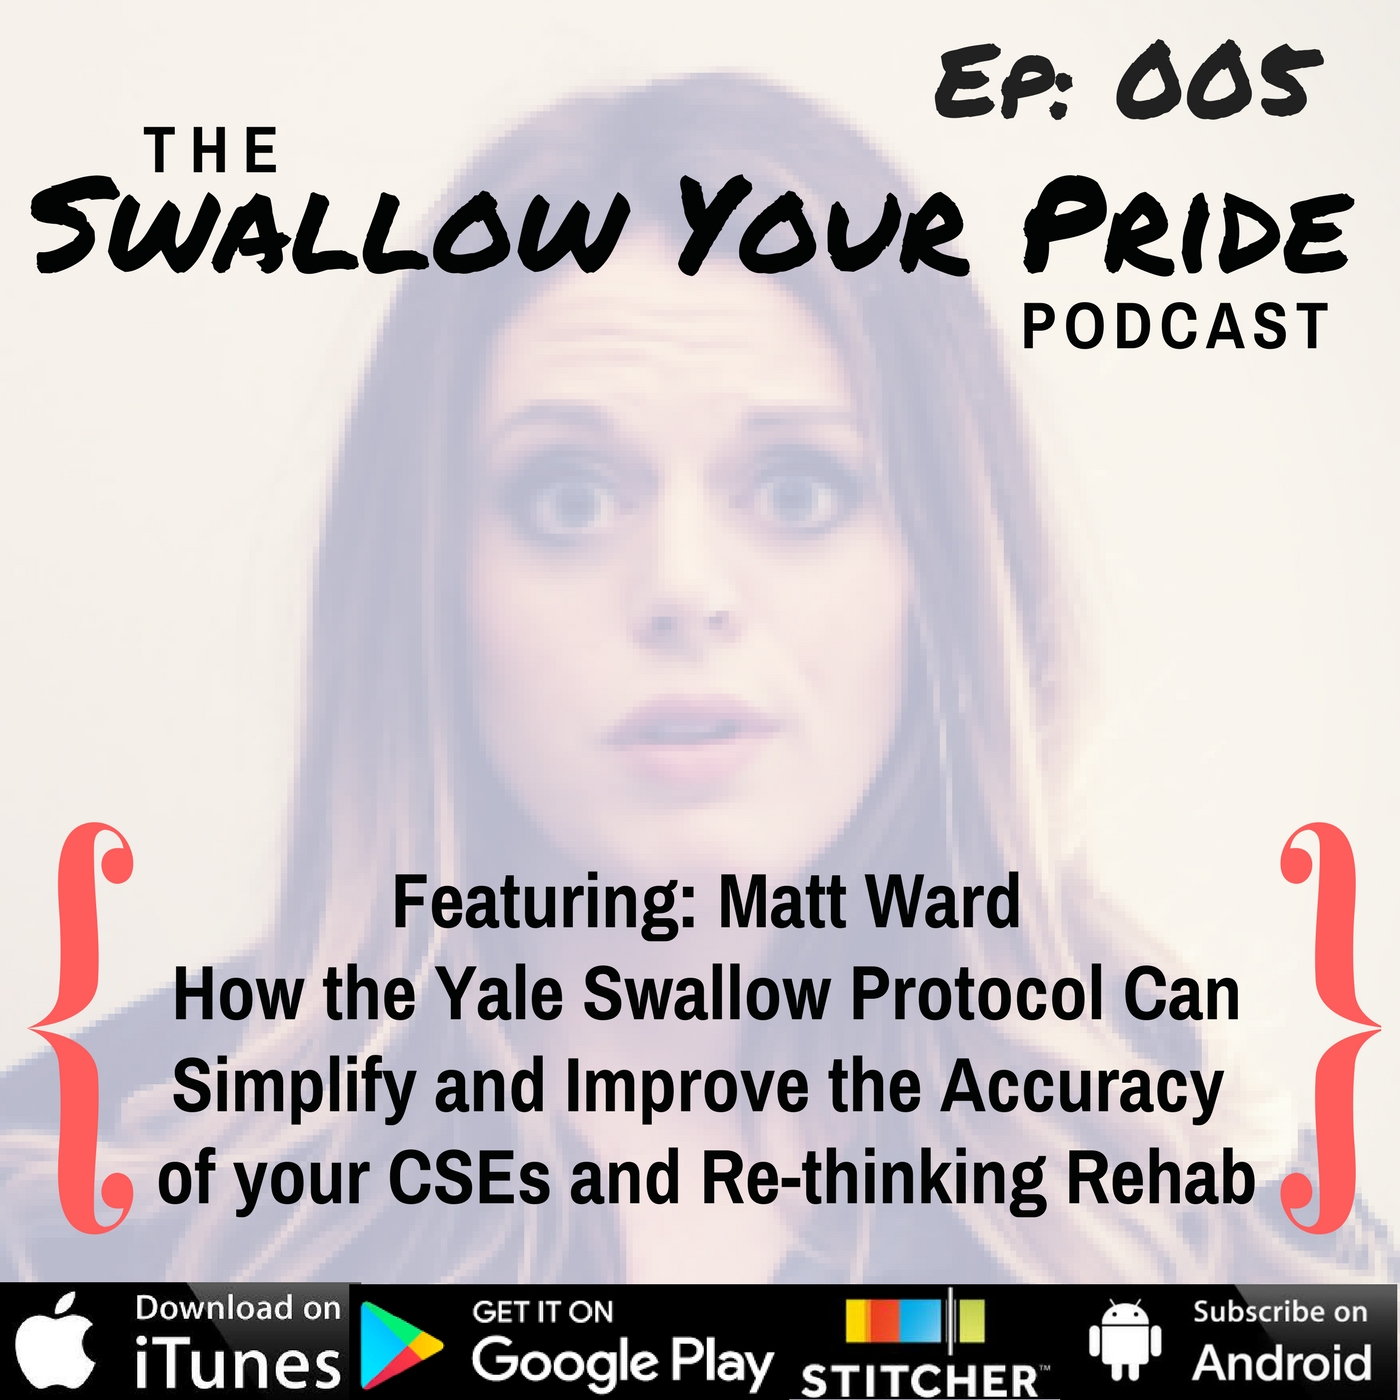 005 – Matt Ward, M.S., CCC-SLP – How the Yale Swallow Protocol Can Simplify and Improve the Accuracy of your CSEs and Re-thinking Rehab